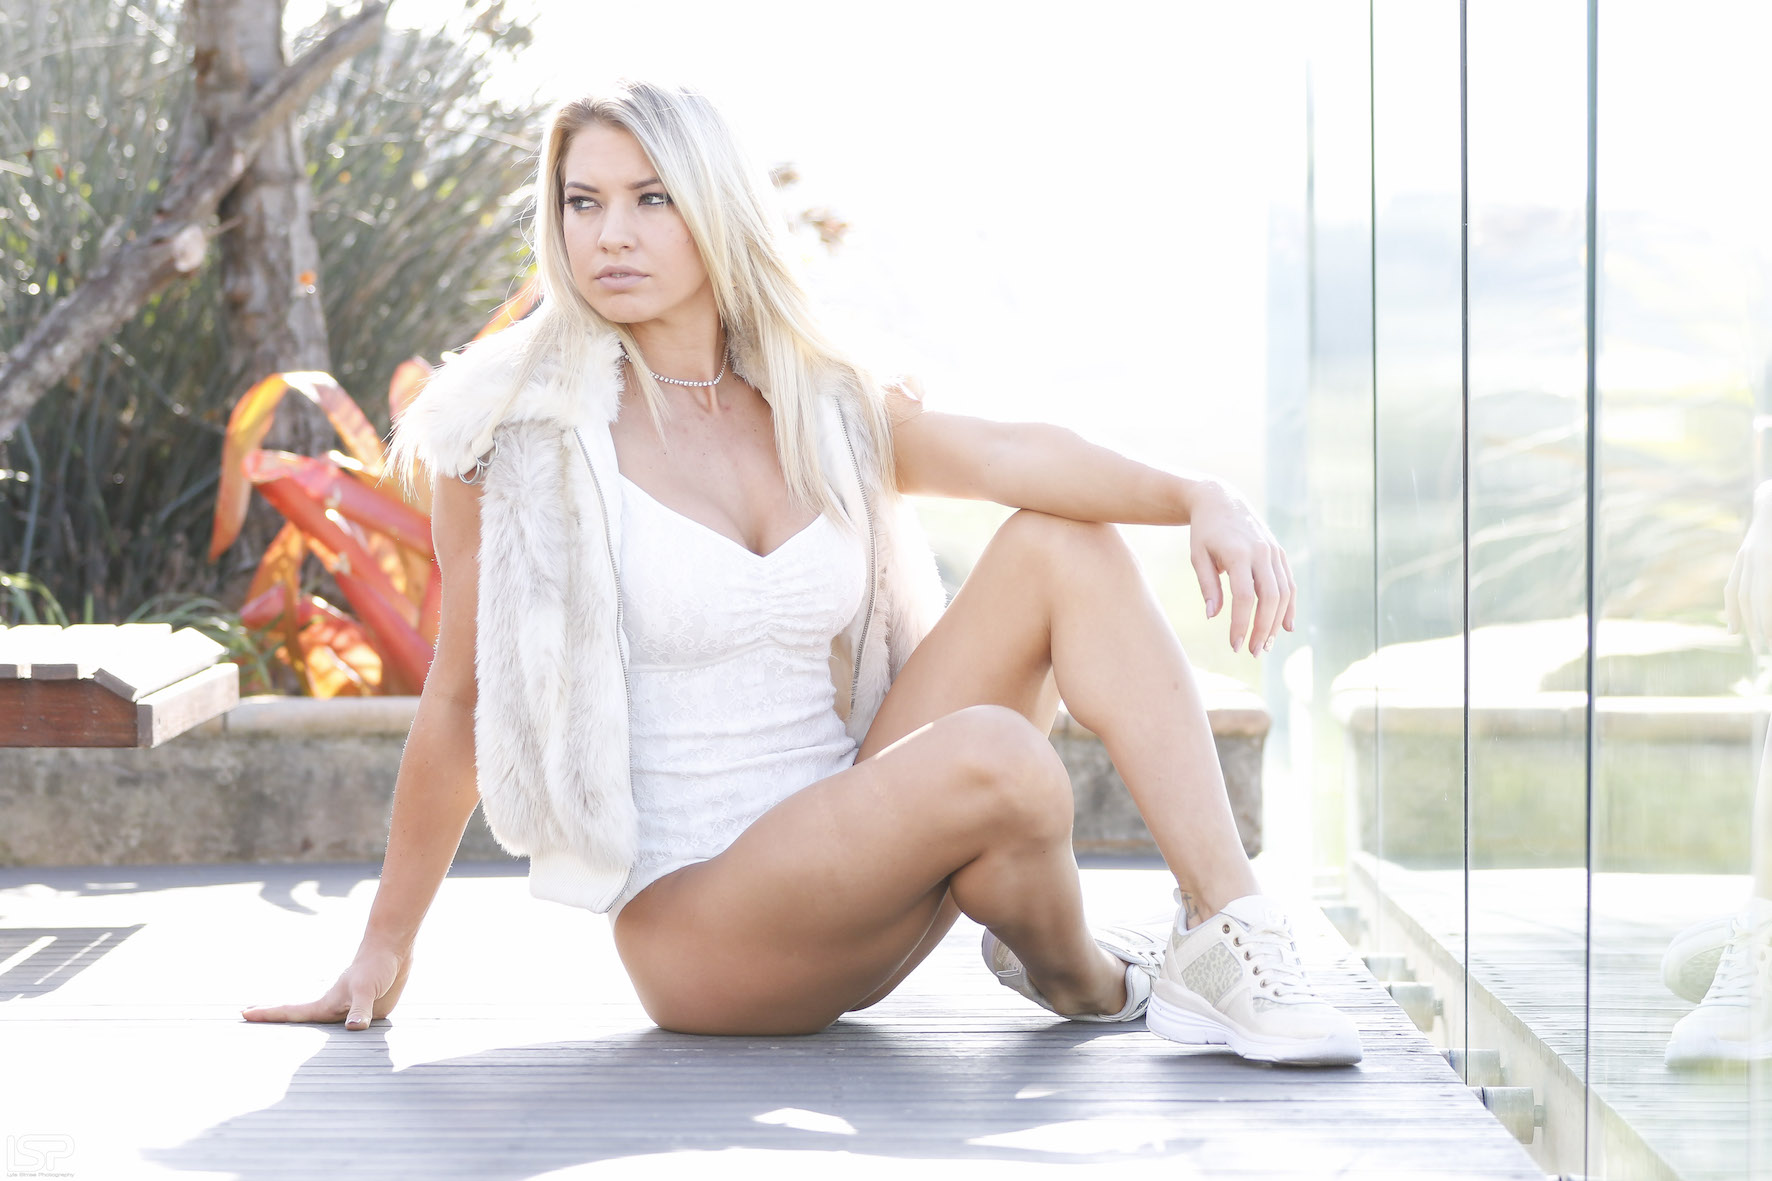 Our SA Girls feature with Lindie Oosthuizen